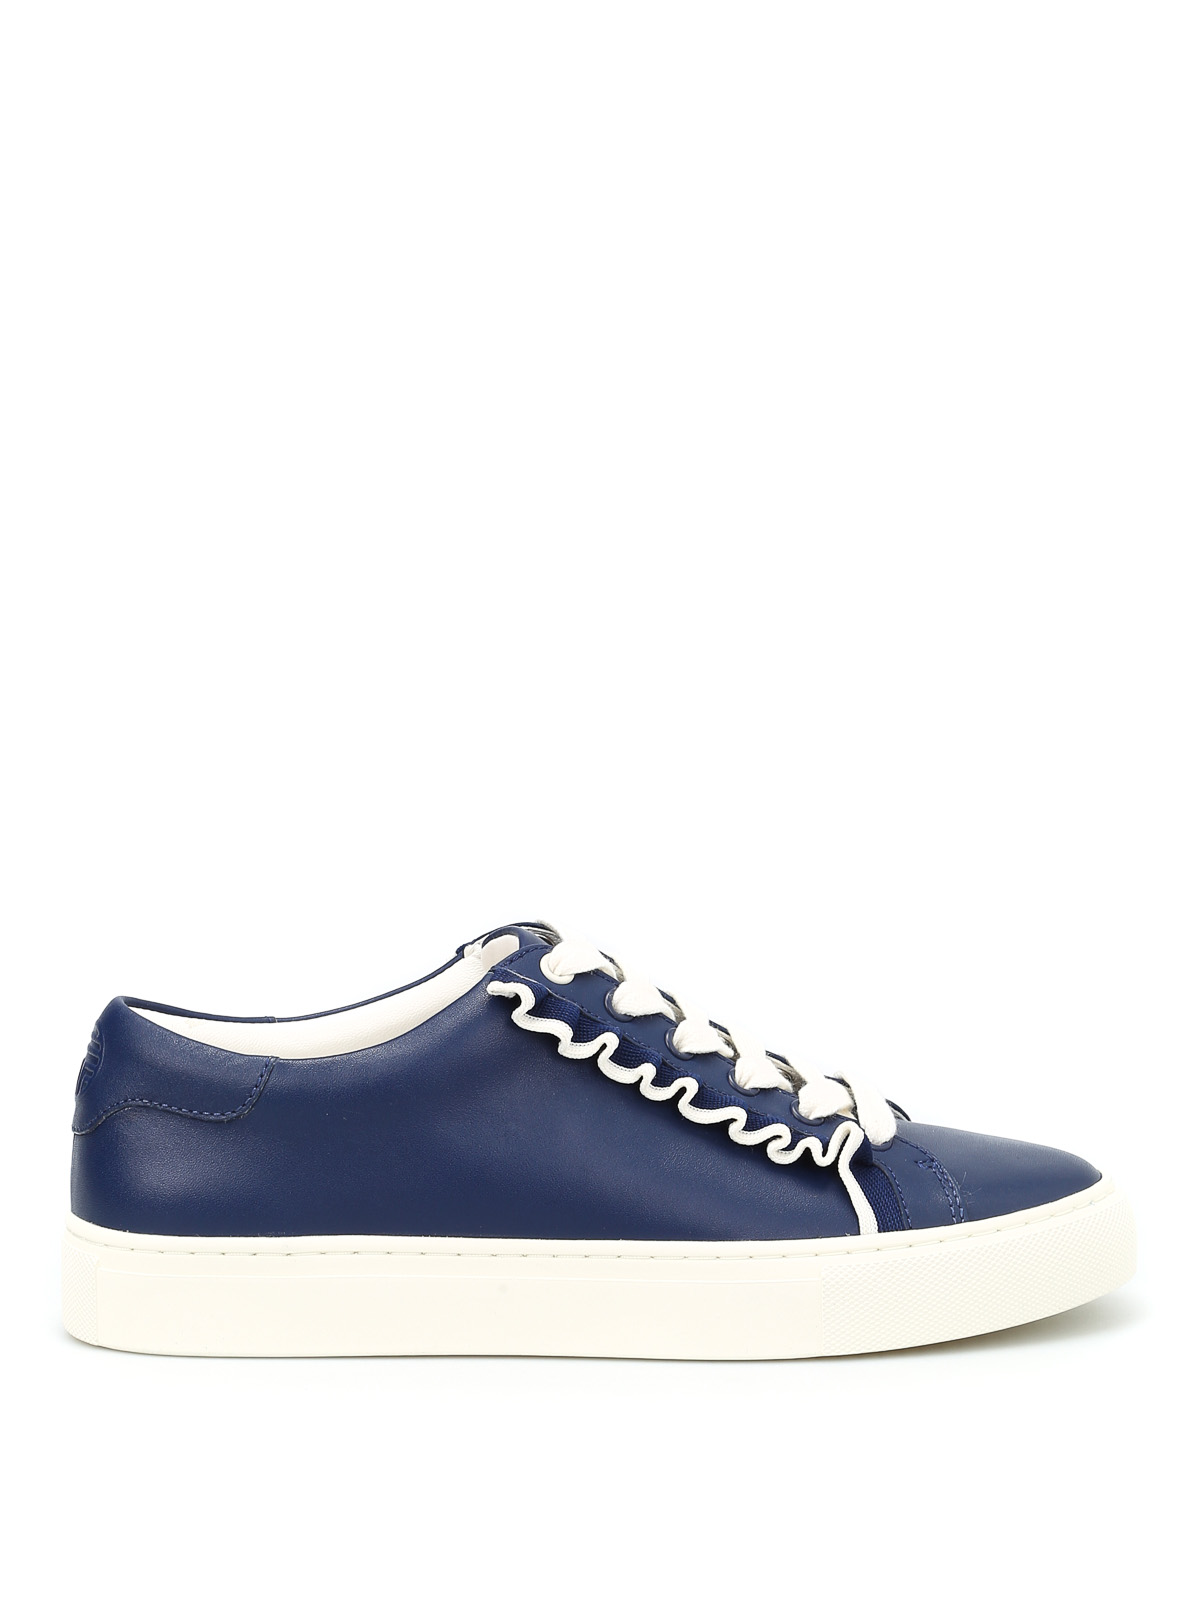 Tory Burch - Ruffle leather sneakers